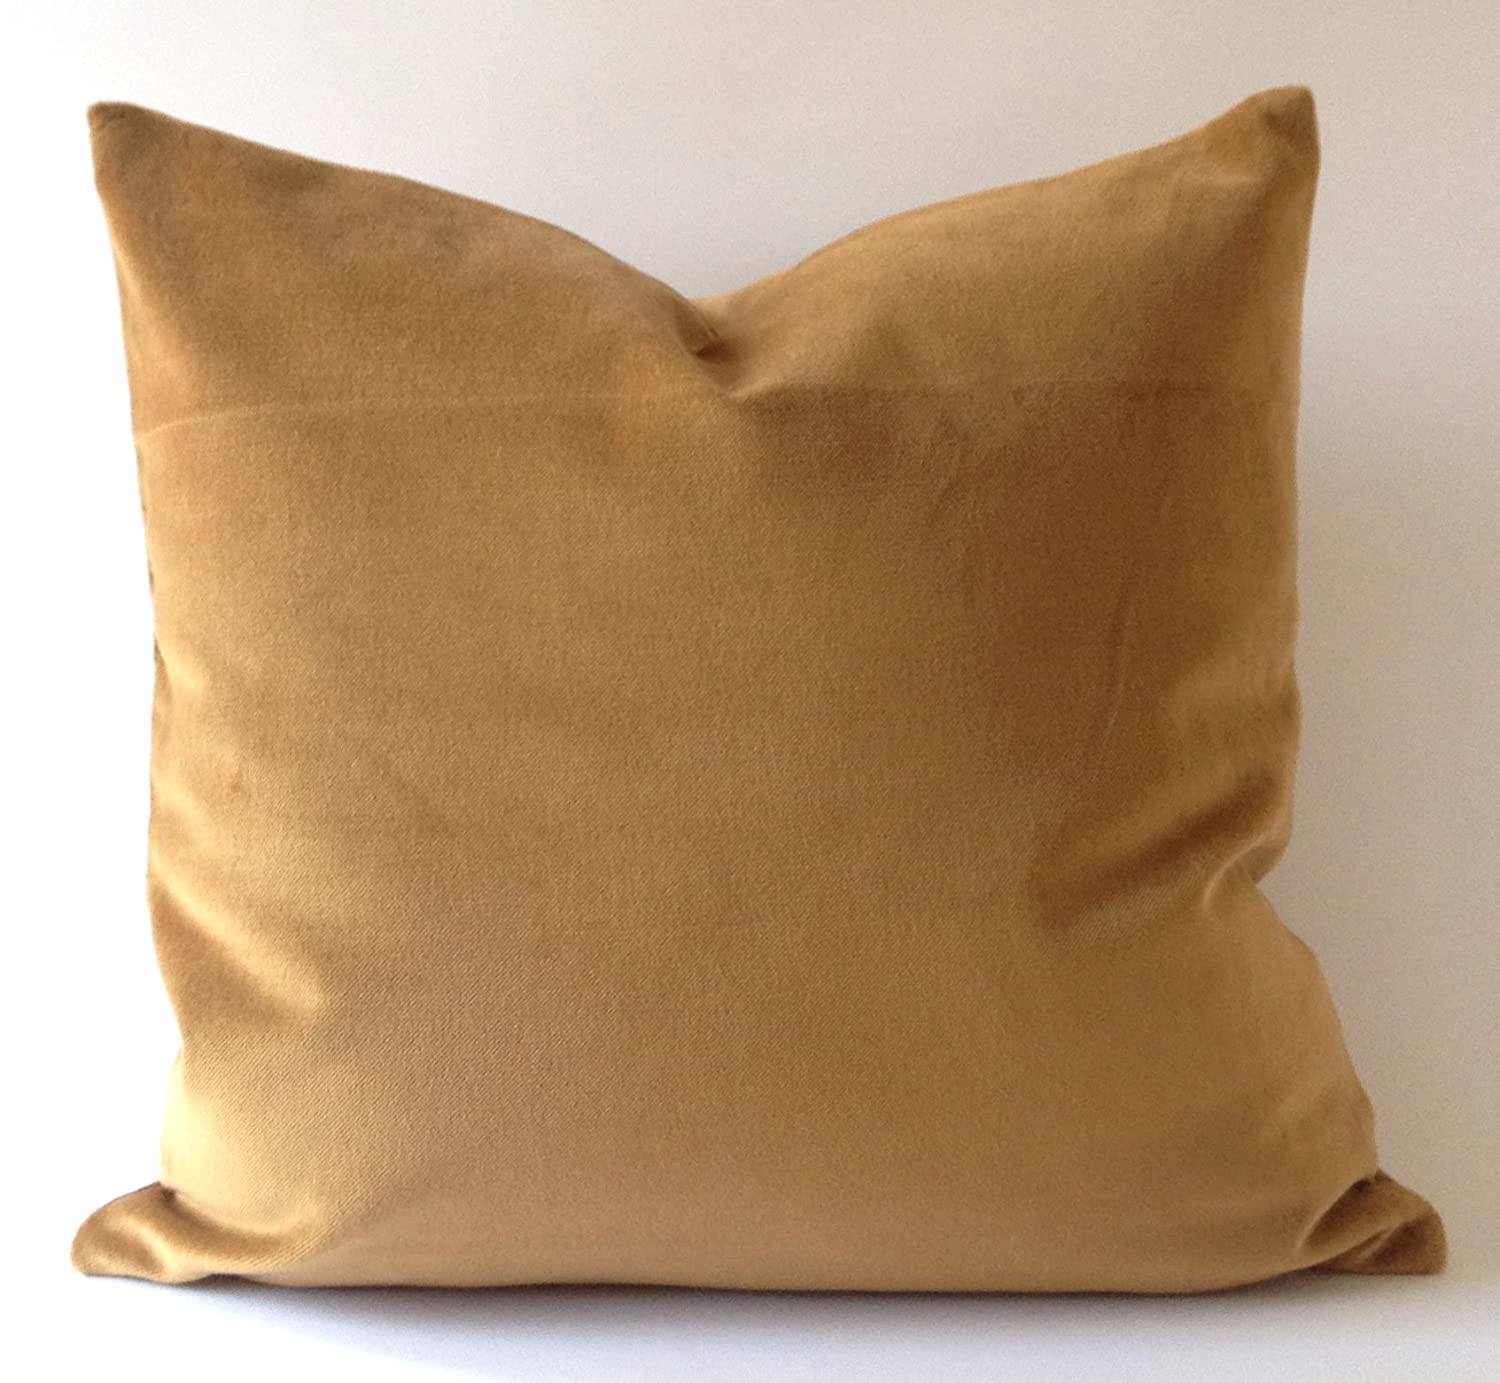 amazoncom decorative throw pillow cover camel brown cotton velvet 20x20 51x51cm insert pillow no included home kitchen - Camel Color